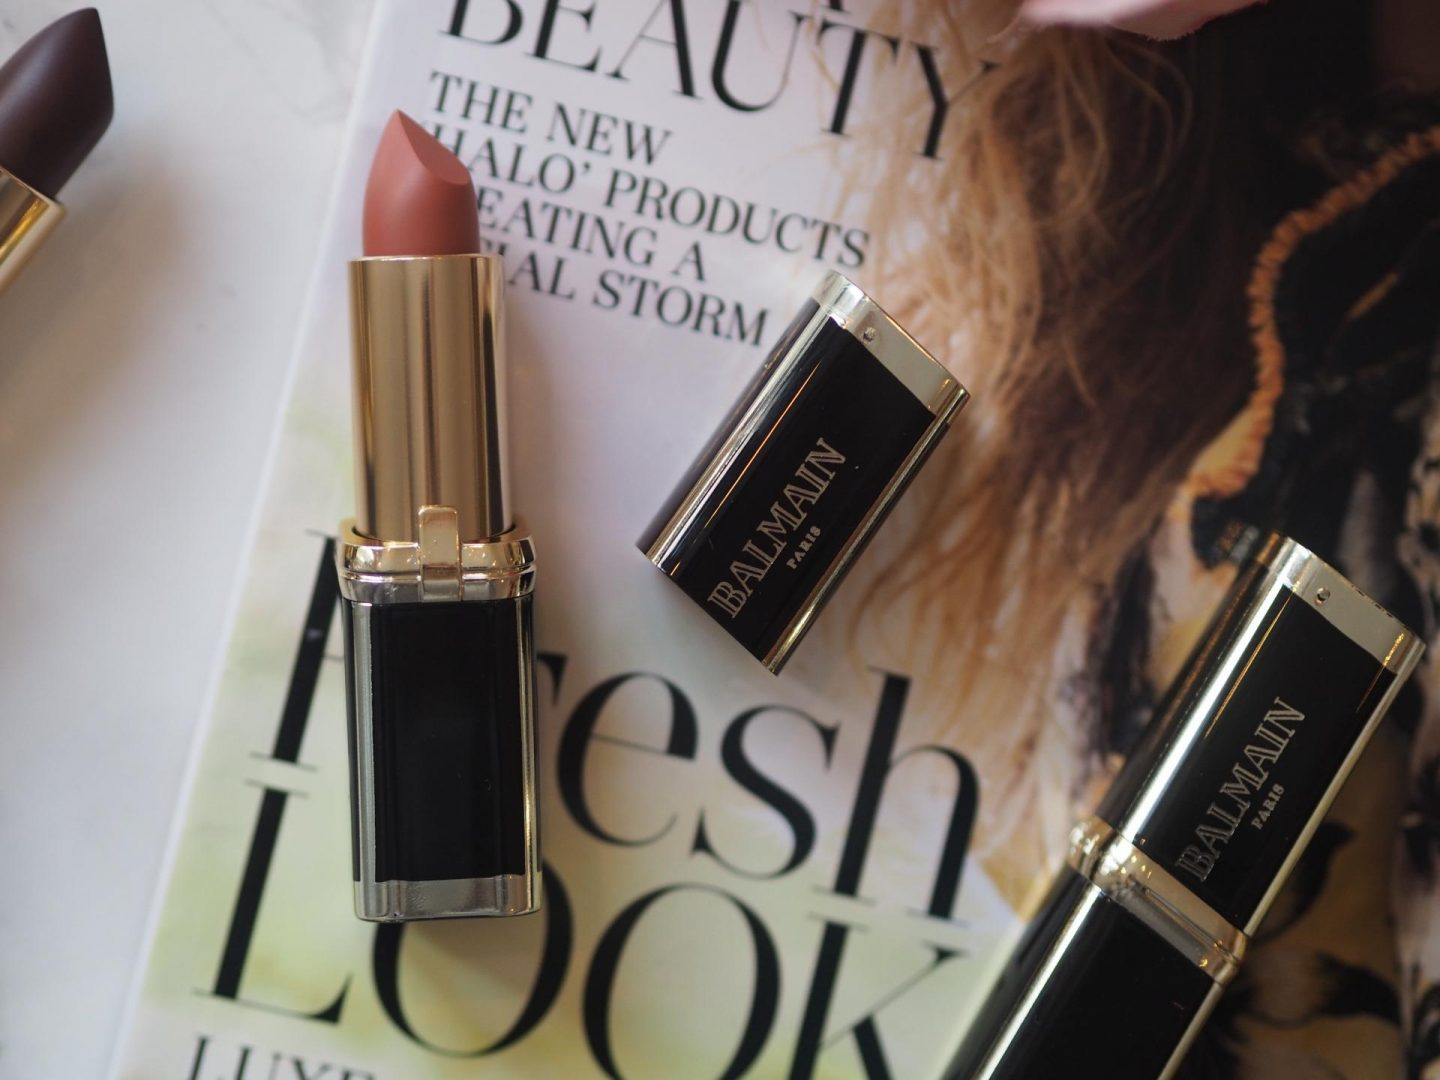 Confessions of a Lipstick Addict: My Favourite New Lipsticks